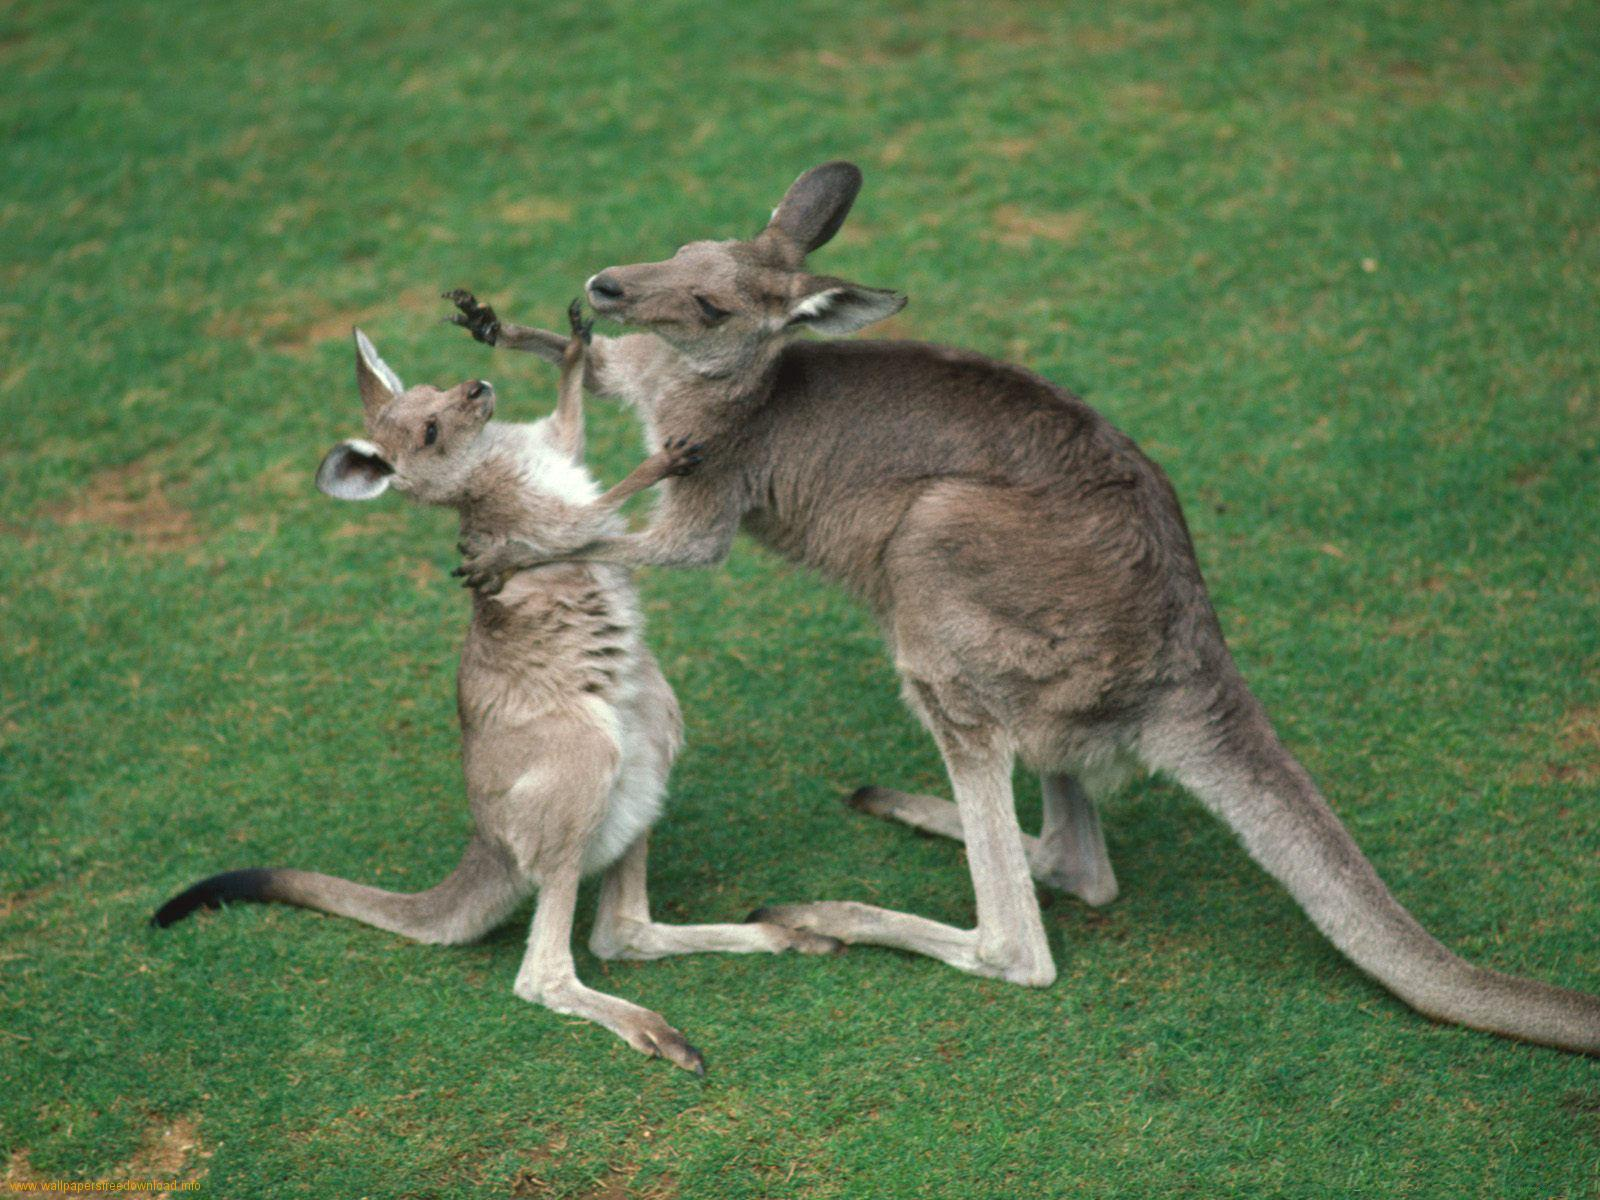 From Australia Design wallpapers for windows 7 Kangaroos Wallpapers 1600x1200